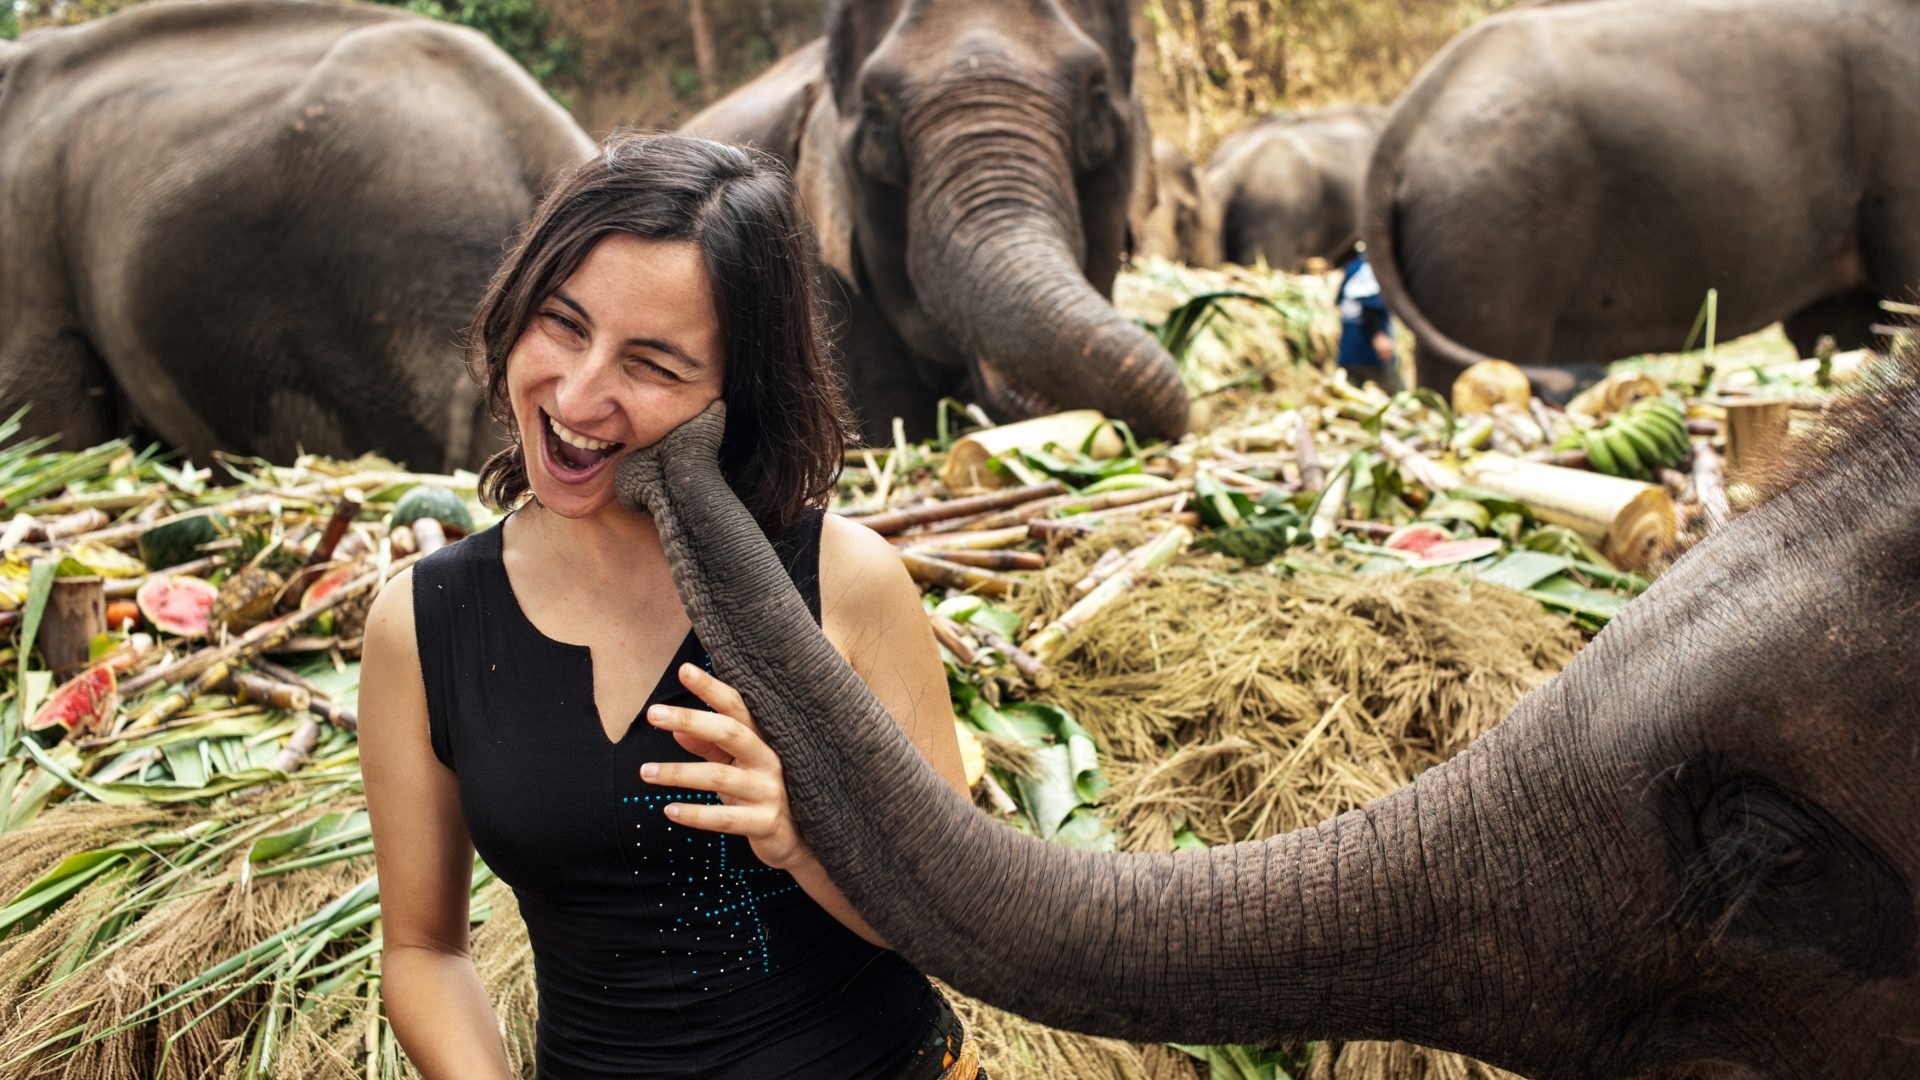 Elephant trekking alternatives: elephant-feeding experiences